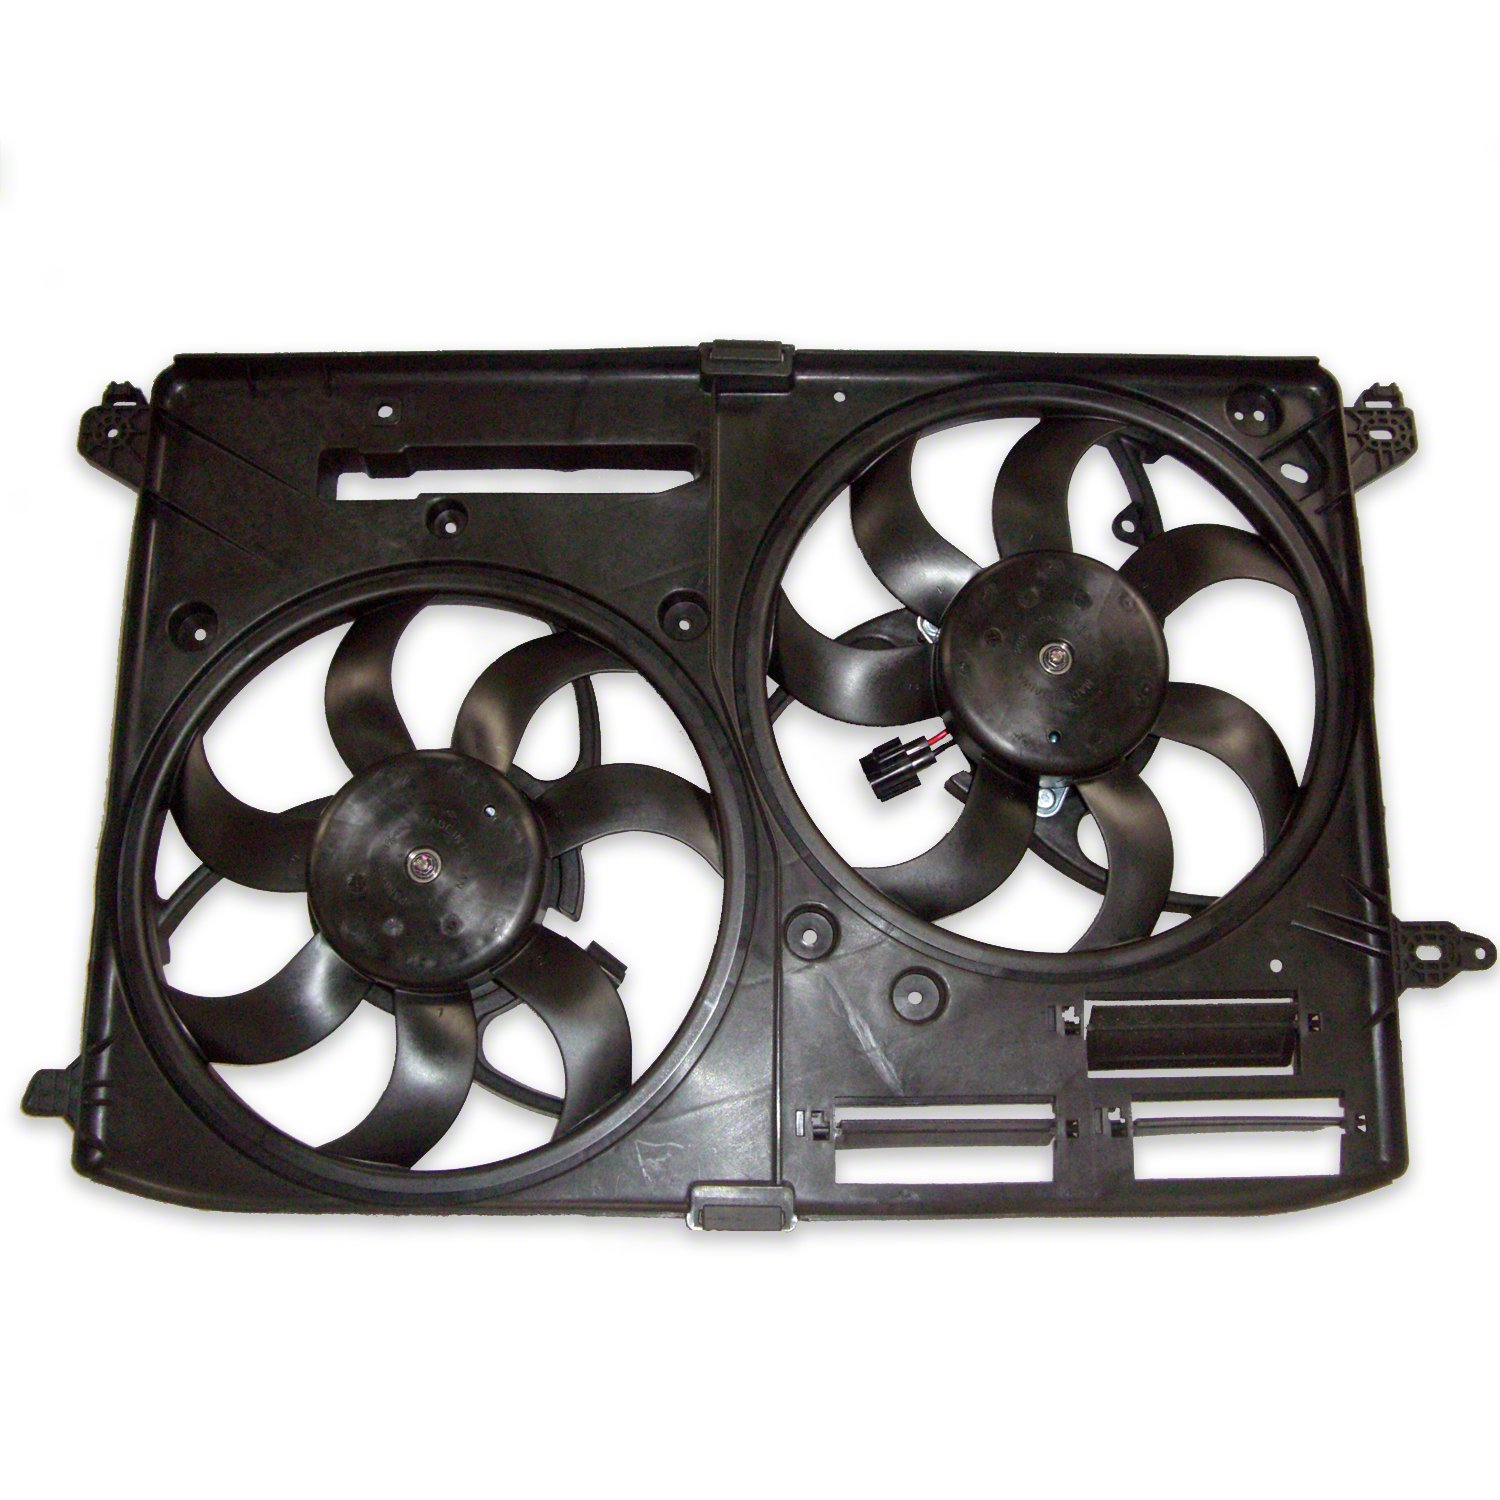 Amazon.com: CPP Radiator Cooling Fan Assembly for 2013 Ford Fusion FO3115196: Automotive